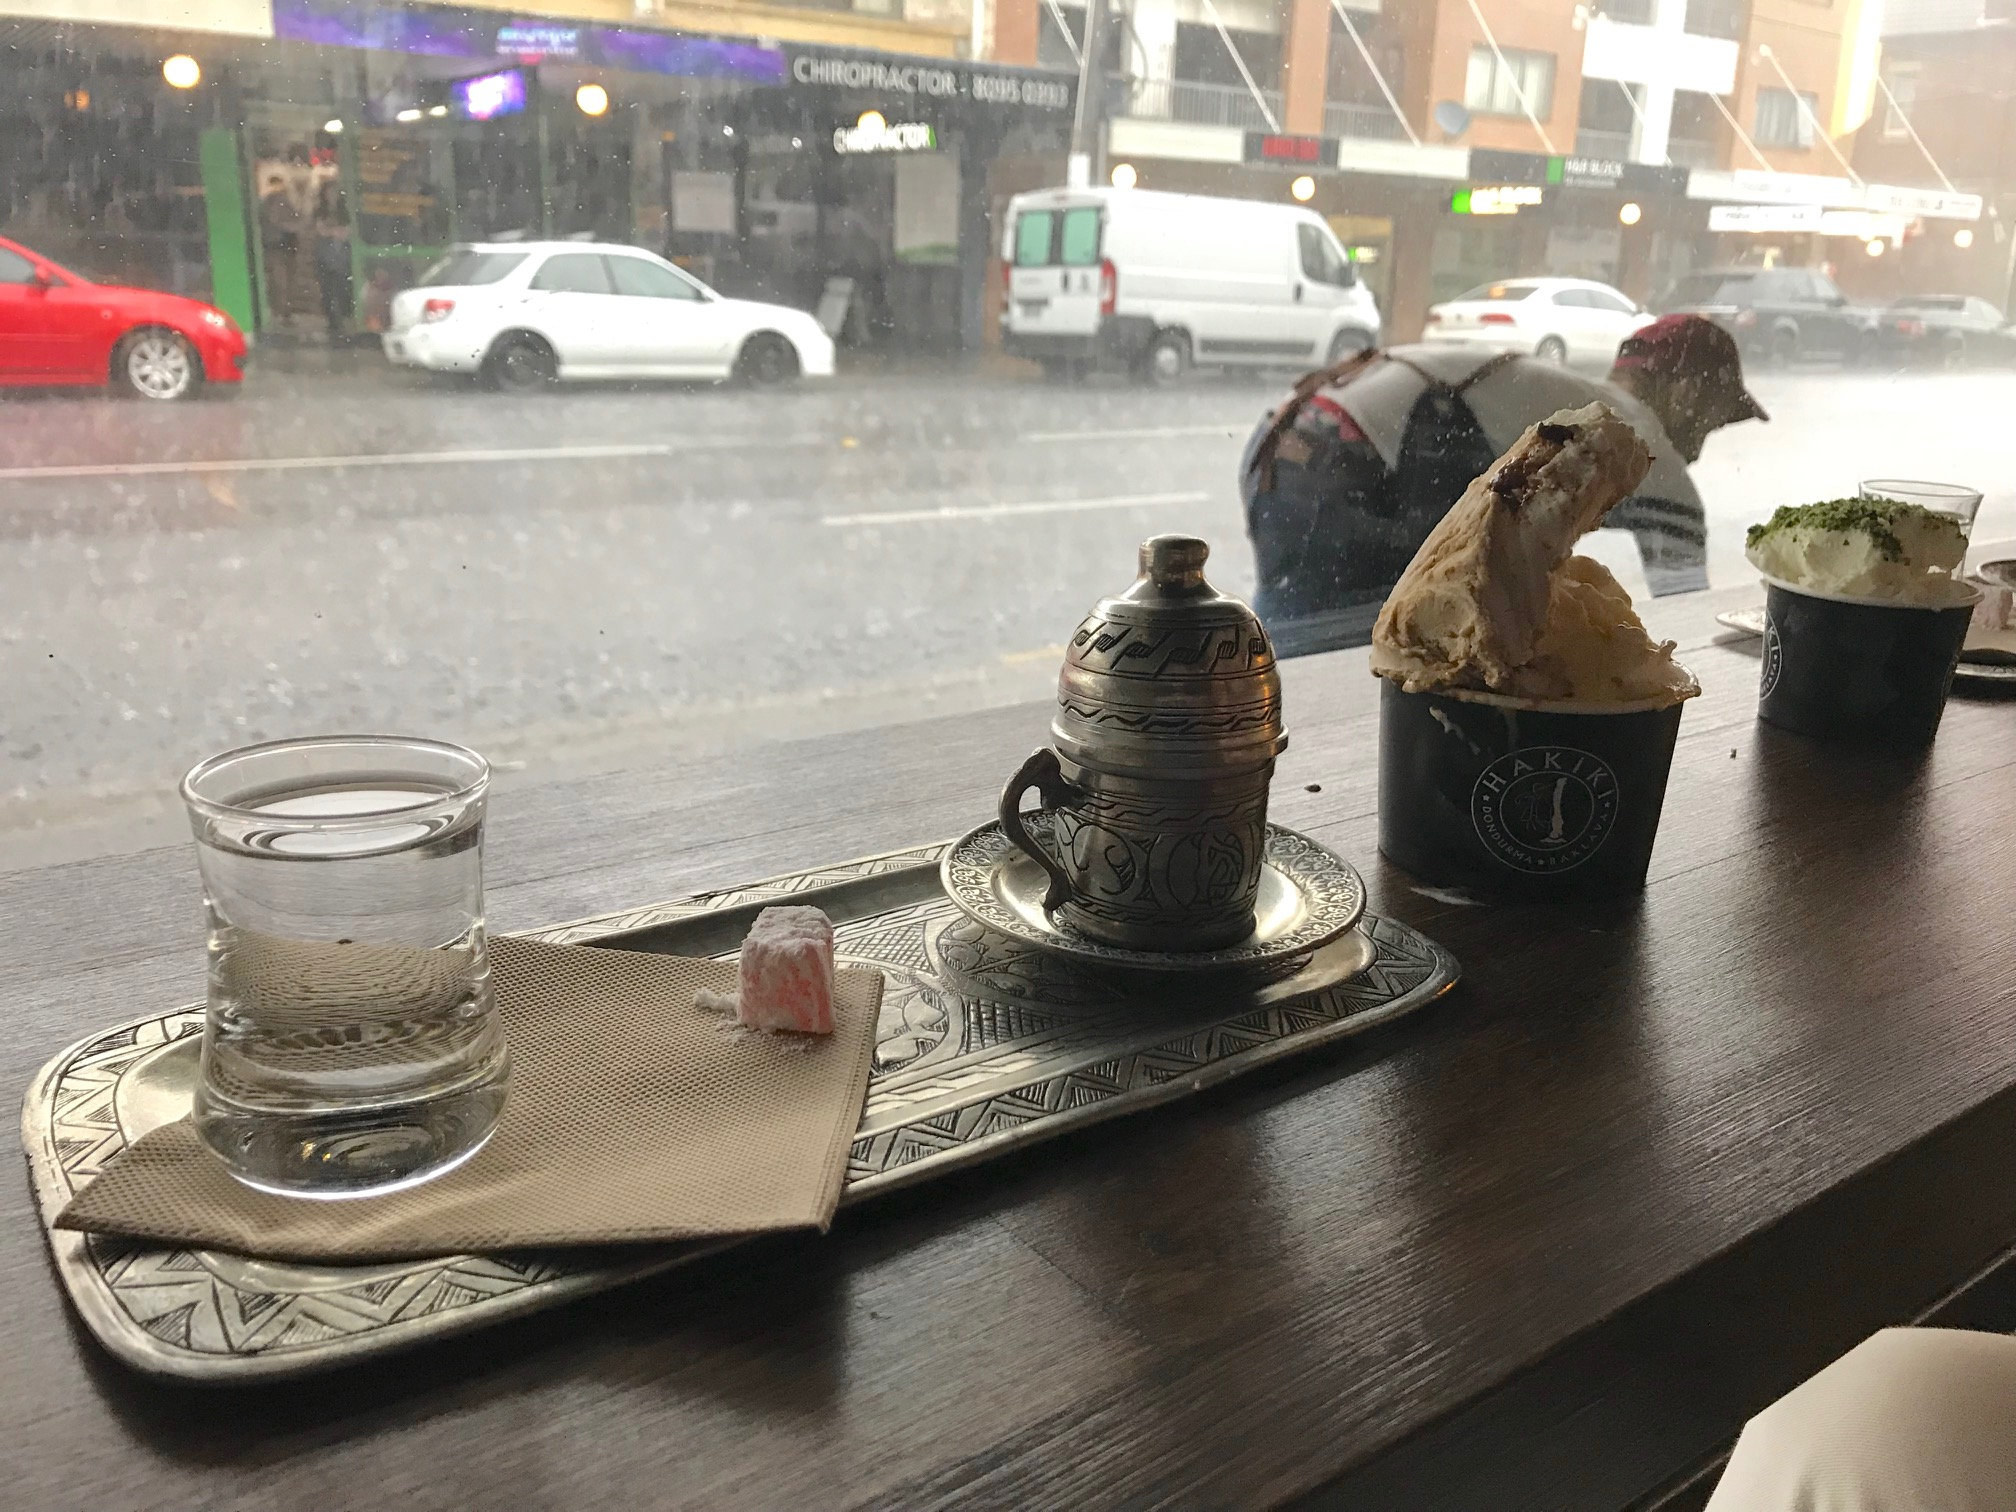 Turkish coffee and ice cream at Hakiki. The sudden downpour was a good excuse for a second helping!